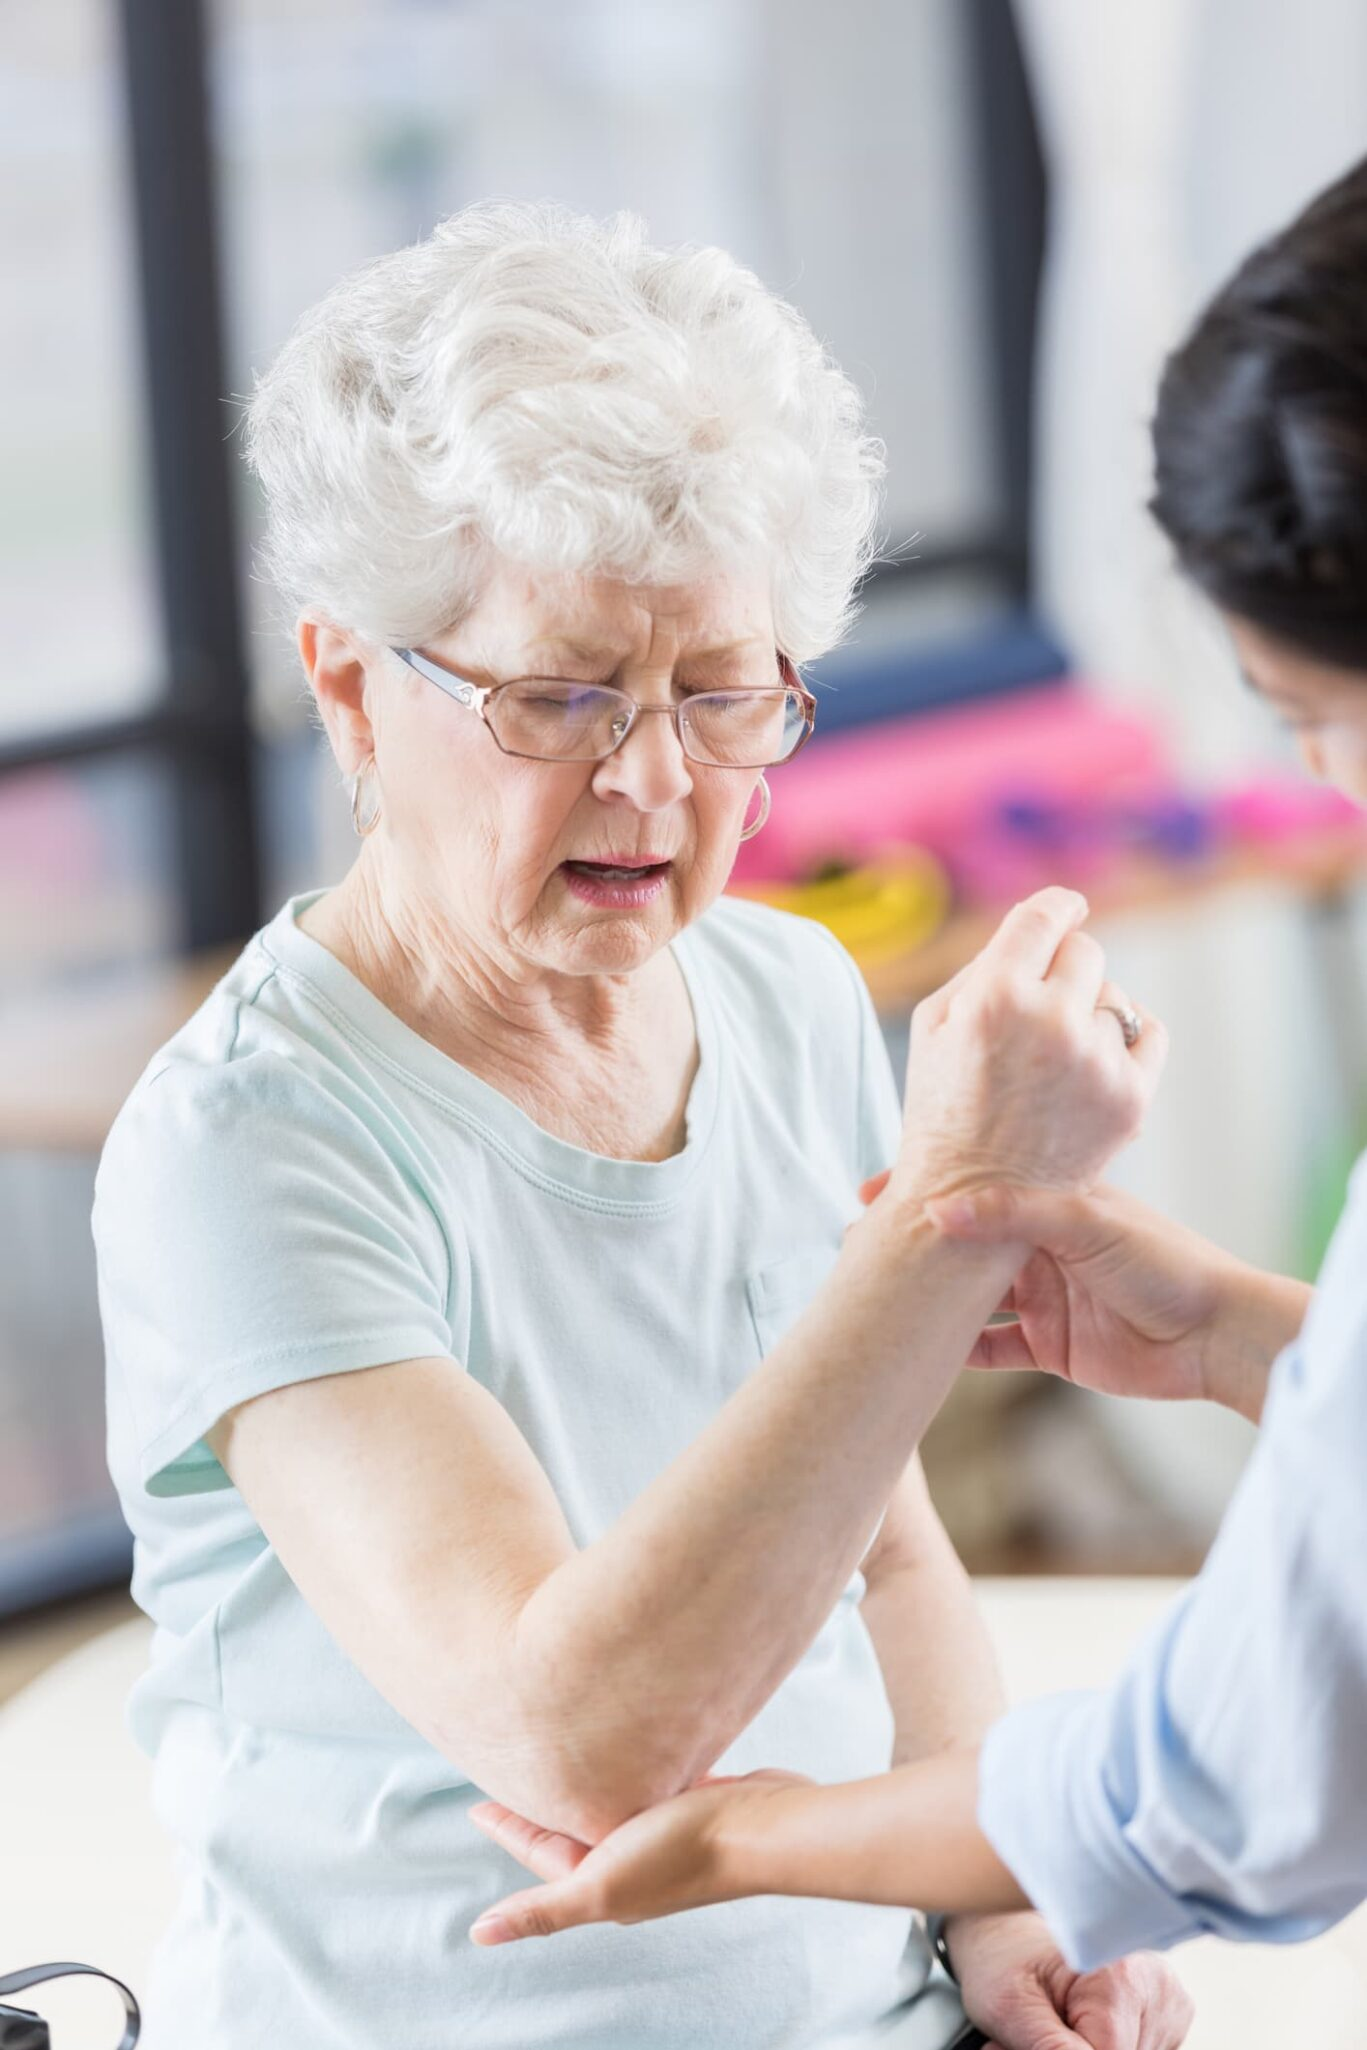 Older woman working on arm range of motion with therapist.